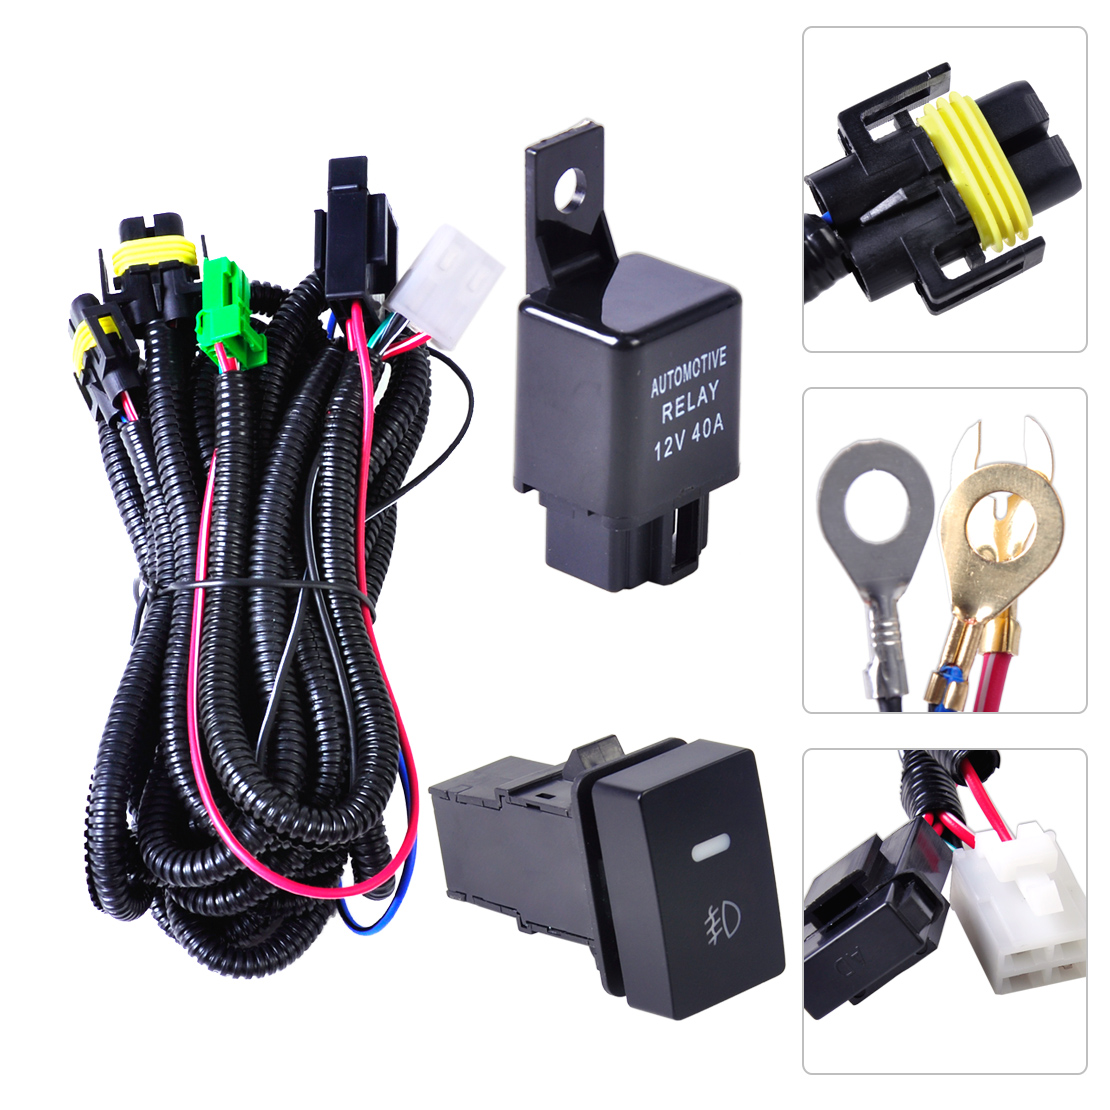 DWCX Wiring Harness Sockets Wire + Switch for H11 Fog Light Lamp for Ford Focus Acura Nissan Suzuki Subaru Lincoln Honda CR-V set wiring harness sockets wire switch for h11 fog light lamp for ford focus 2008 2014 acura tsx rdx for nissan cube for suzuki